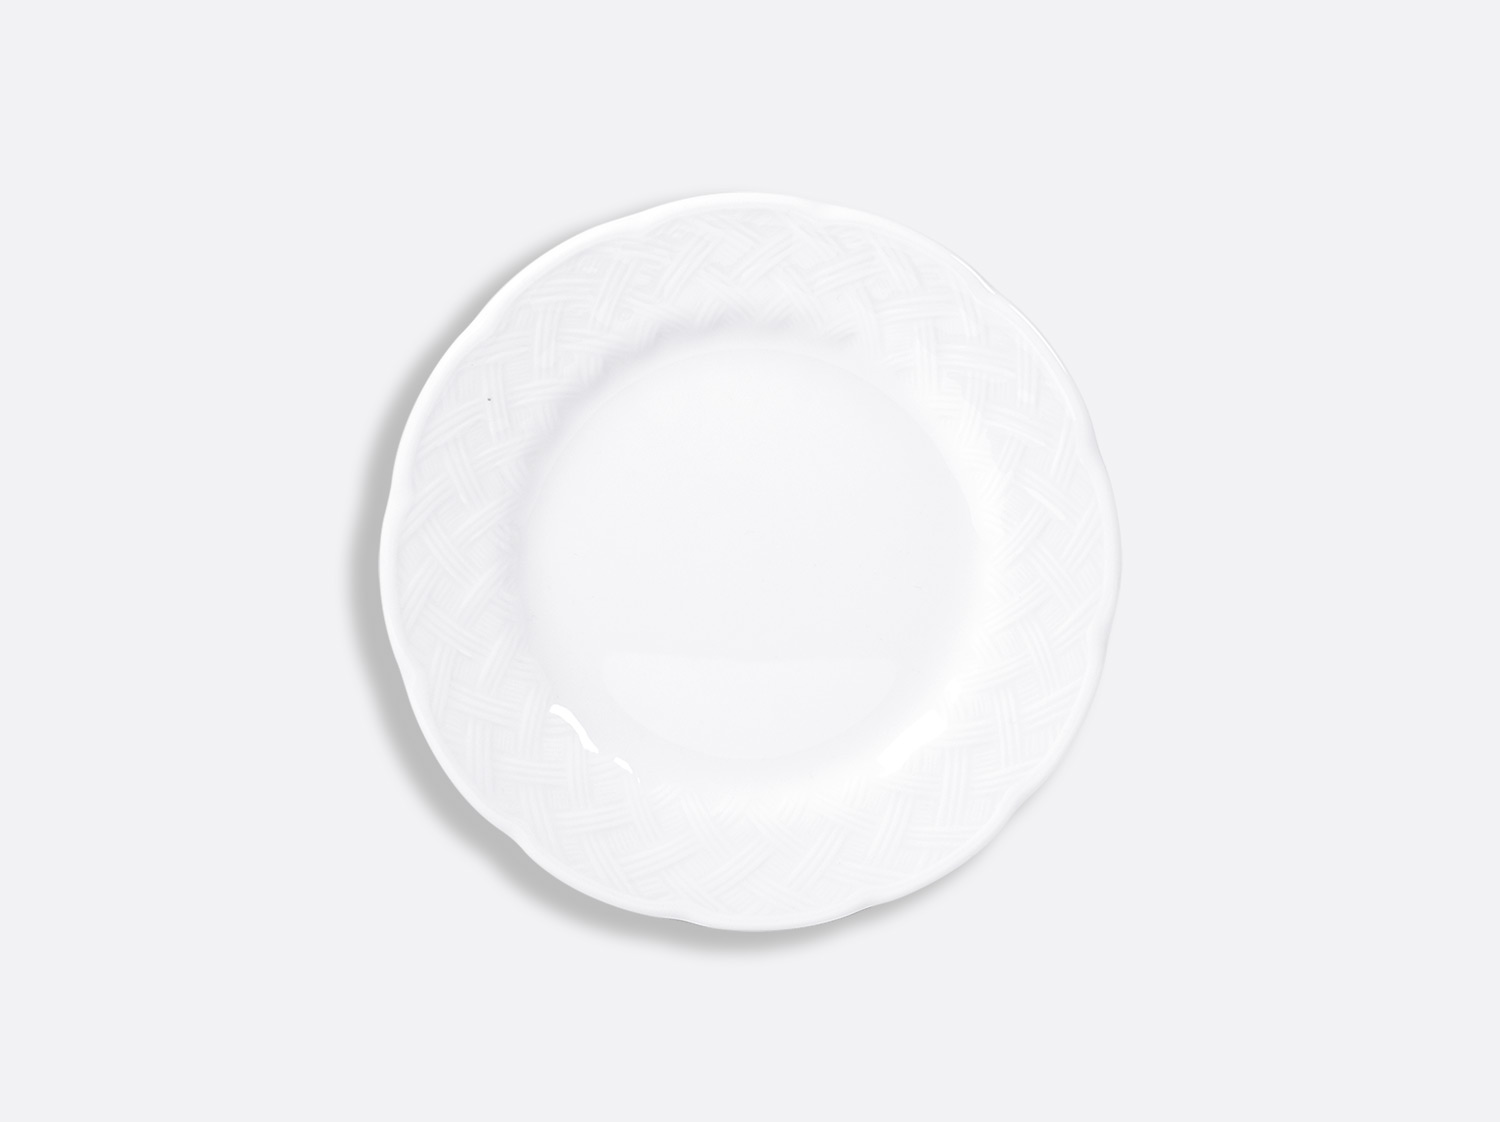 Assiette plate 16 cm en porcelaine de la collection OSIER BLANC Bernardaud